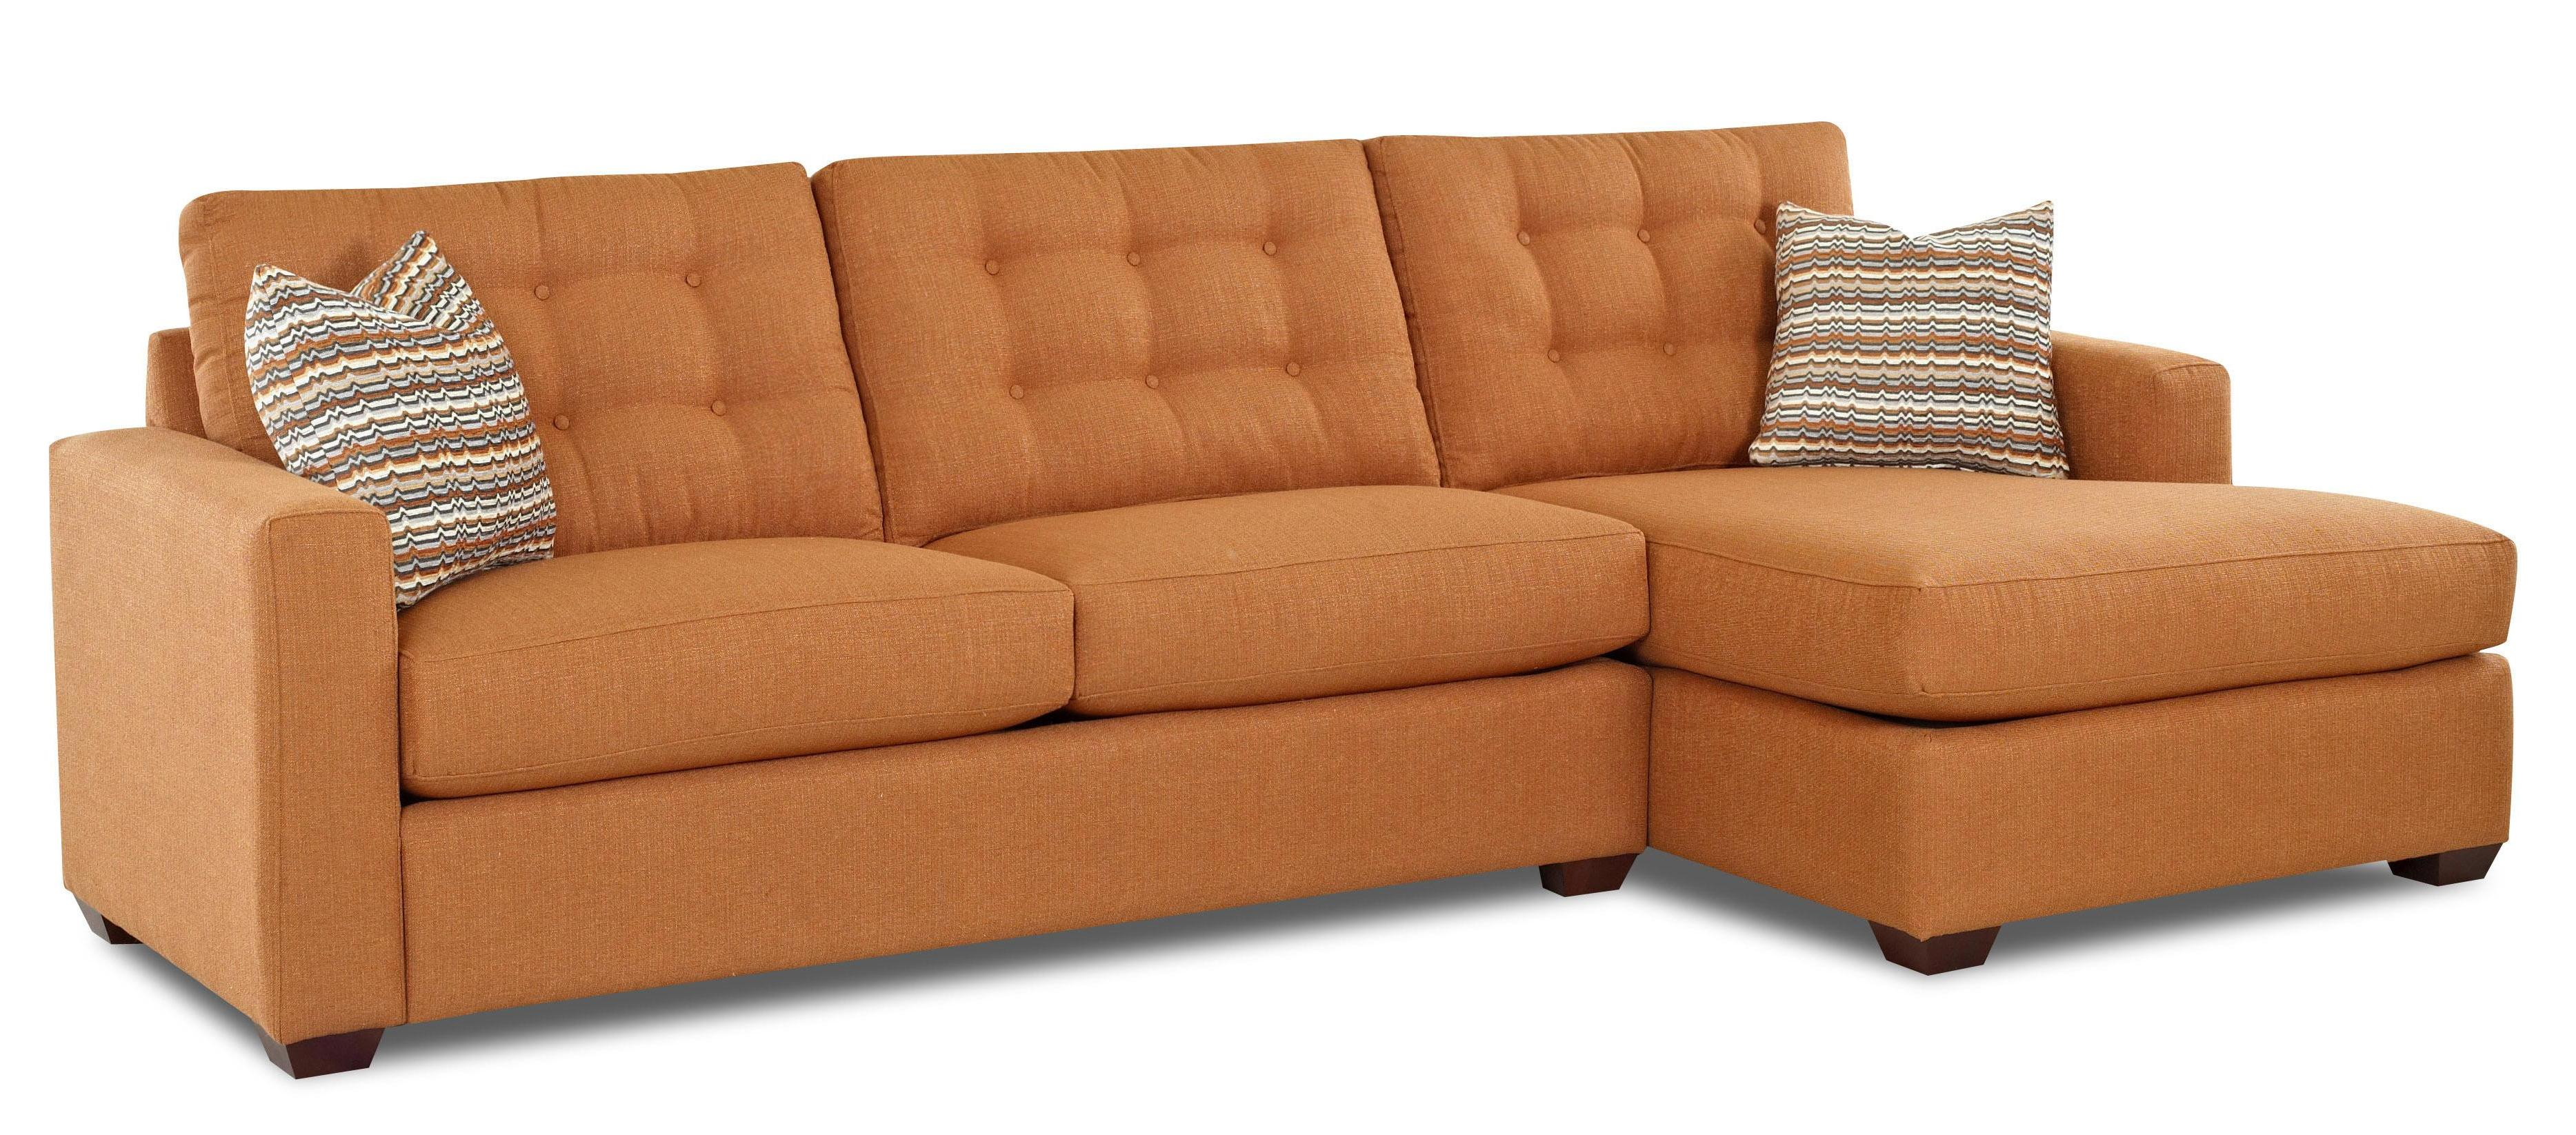 Lido Contemporary Sectional Sofa With Right Facing Chaise Lounge By Klaussner